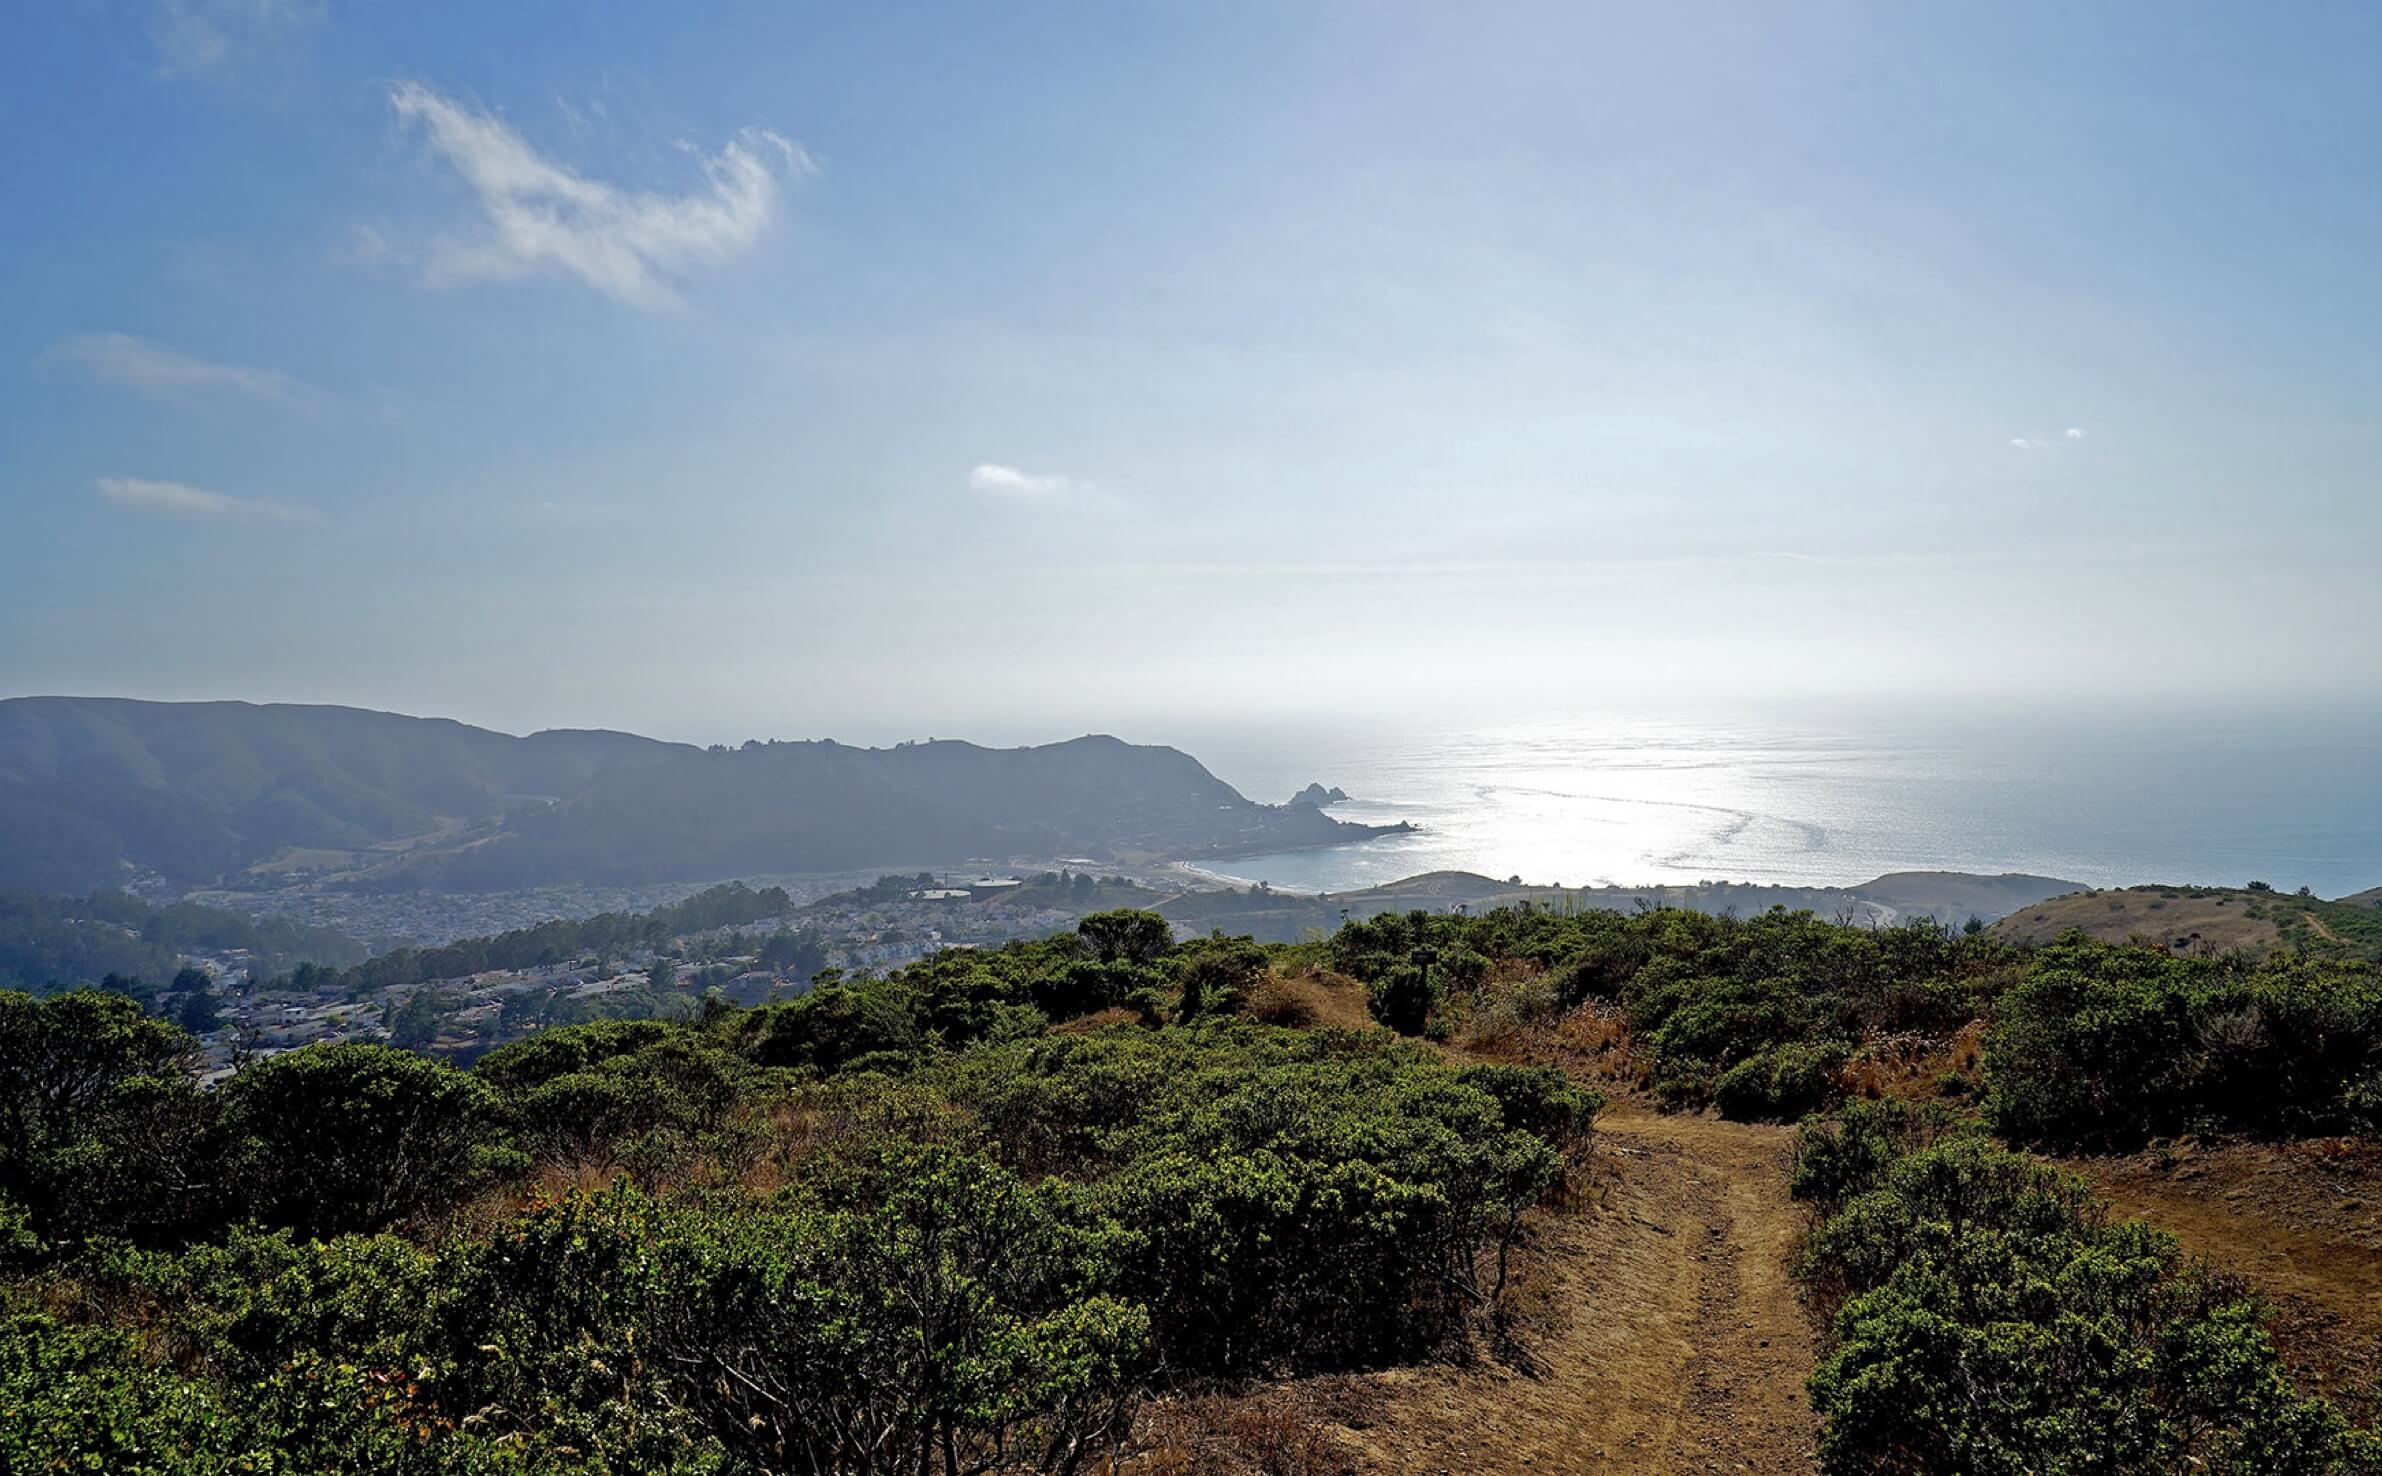 Sweeney Ridge hiking trail with Pacific Ocean in background